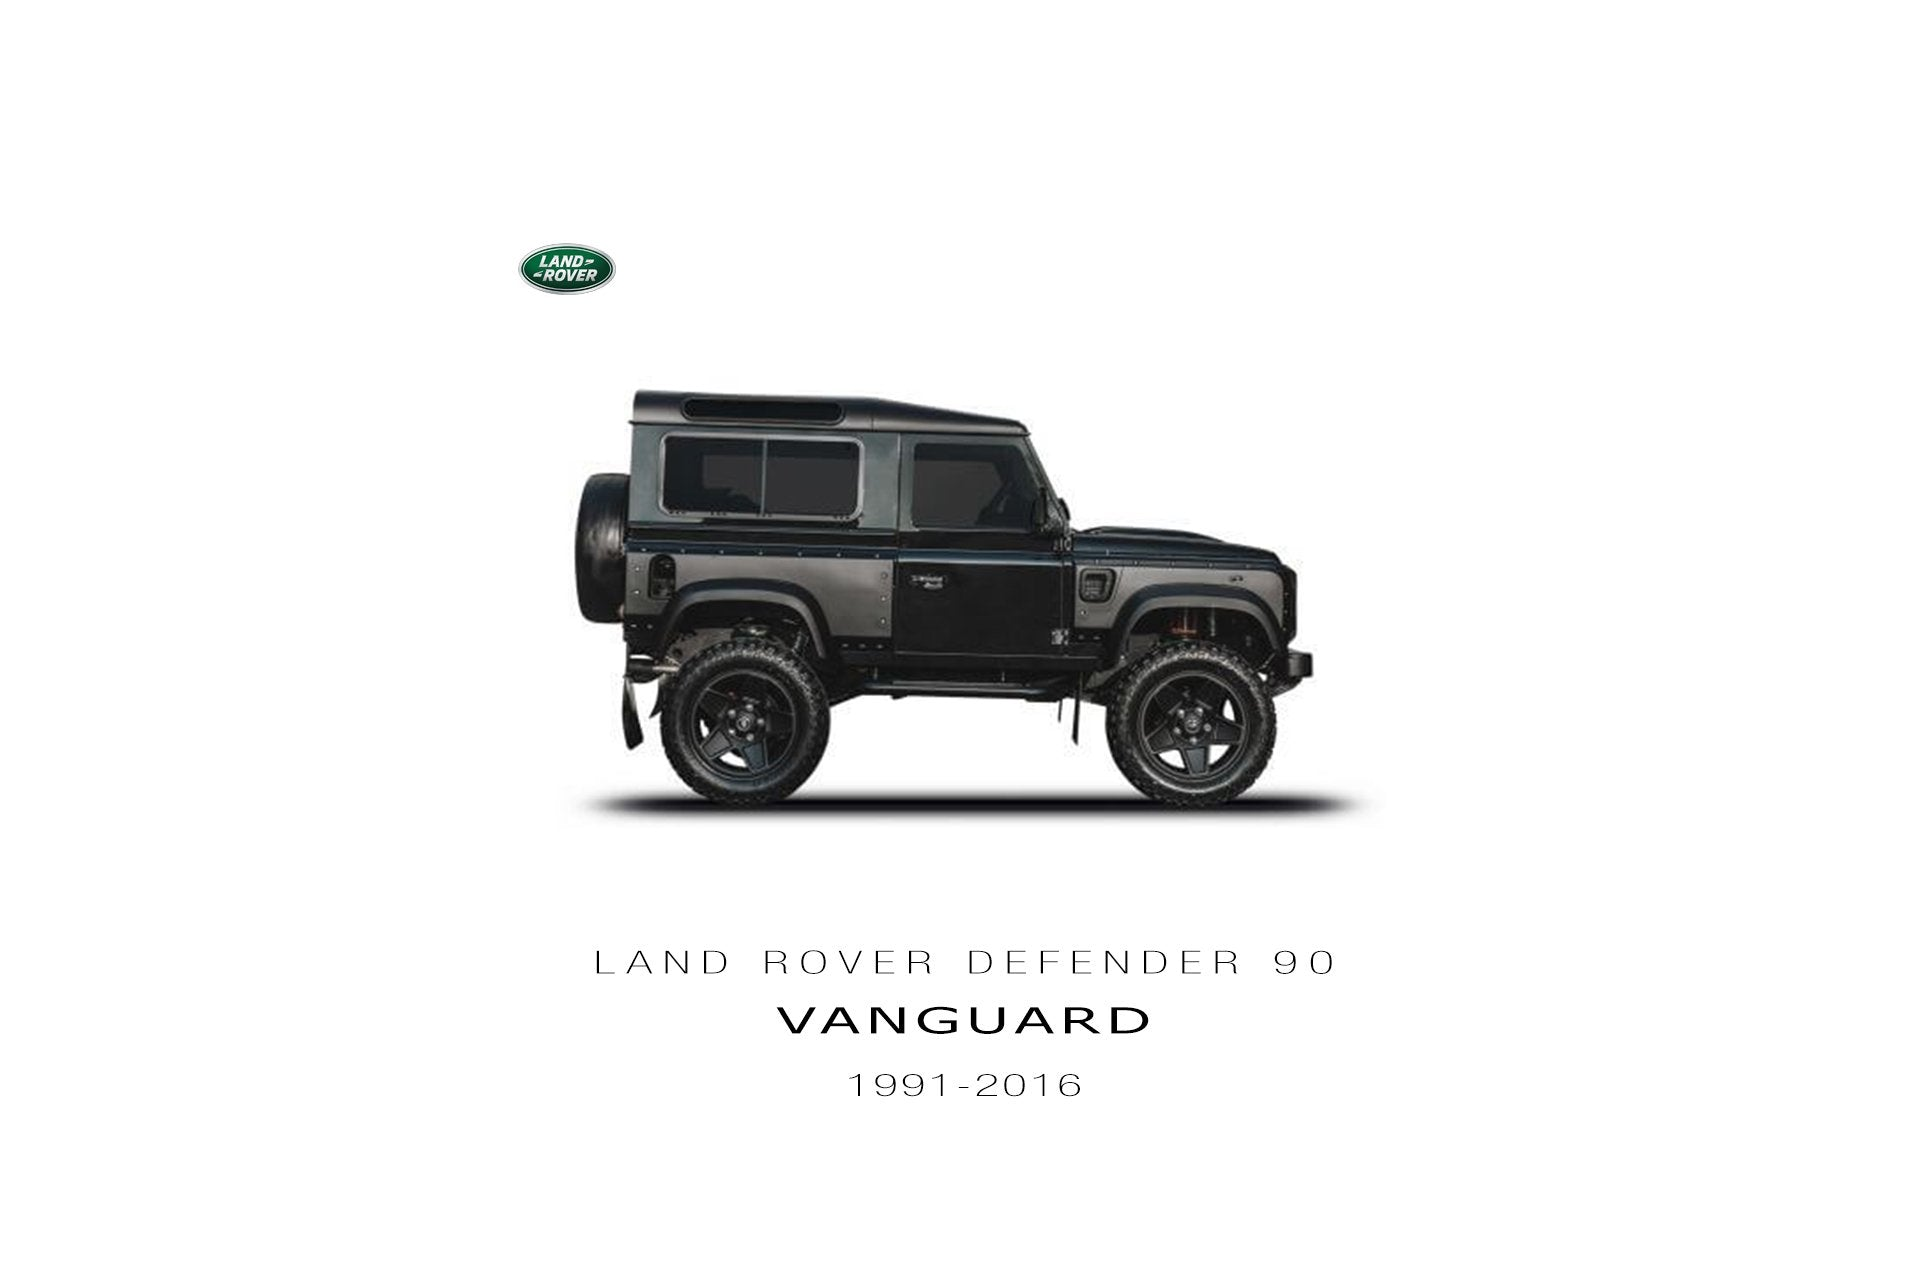 Land Rover Defender 90 (1991-2016) Vanguard Tailored Conversion by Chelsea Truck Company - Image 604